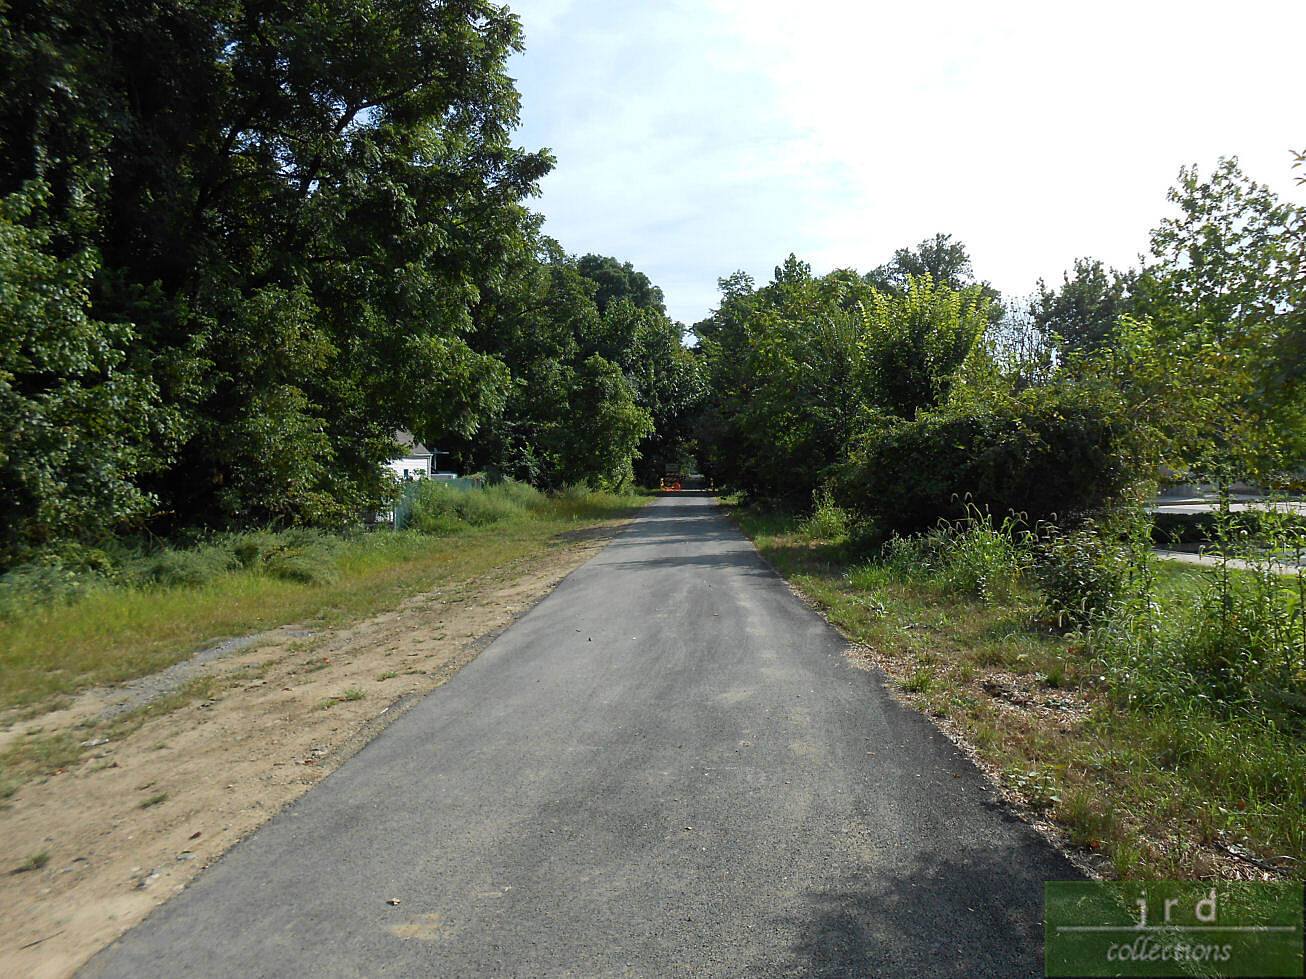 Chester Valley Trail Trail Beyond CHR The newly-paved section after Cedar Hollow Rd. taken on Sept. 5, 2013. Not yet open for use as of date stamp.